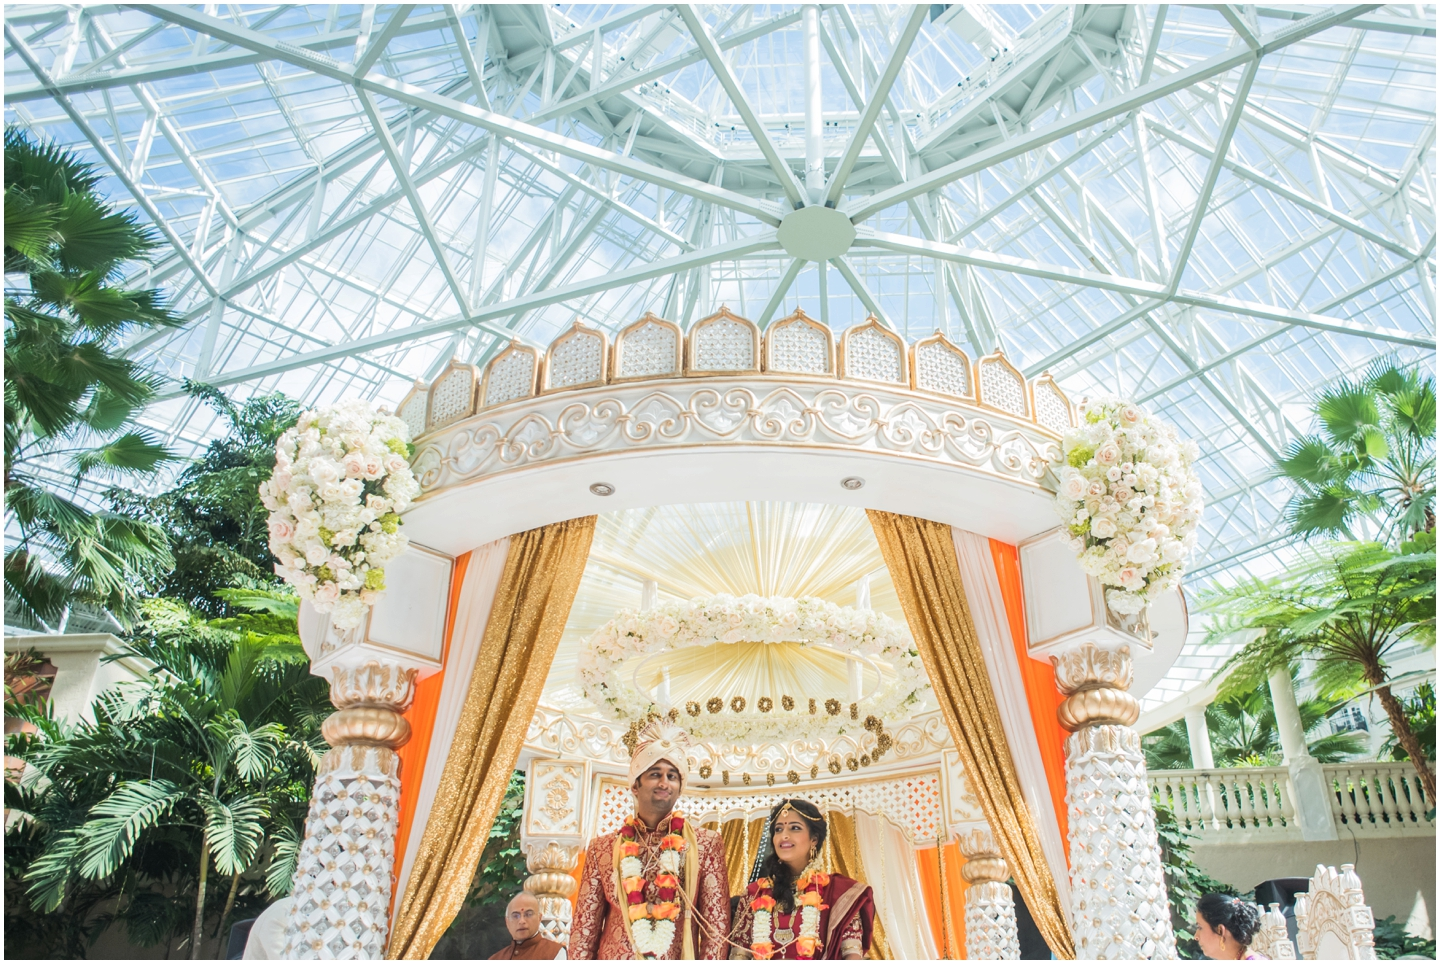 Indian Weddings Archives - Amita Photography